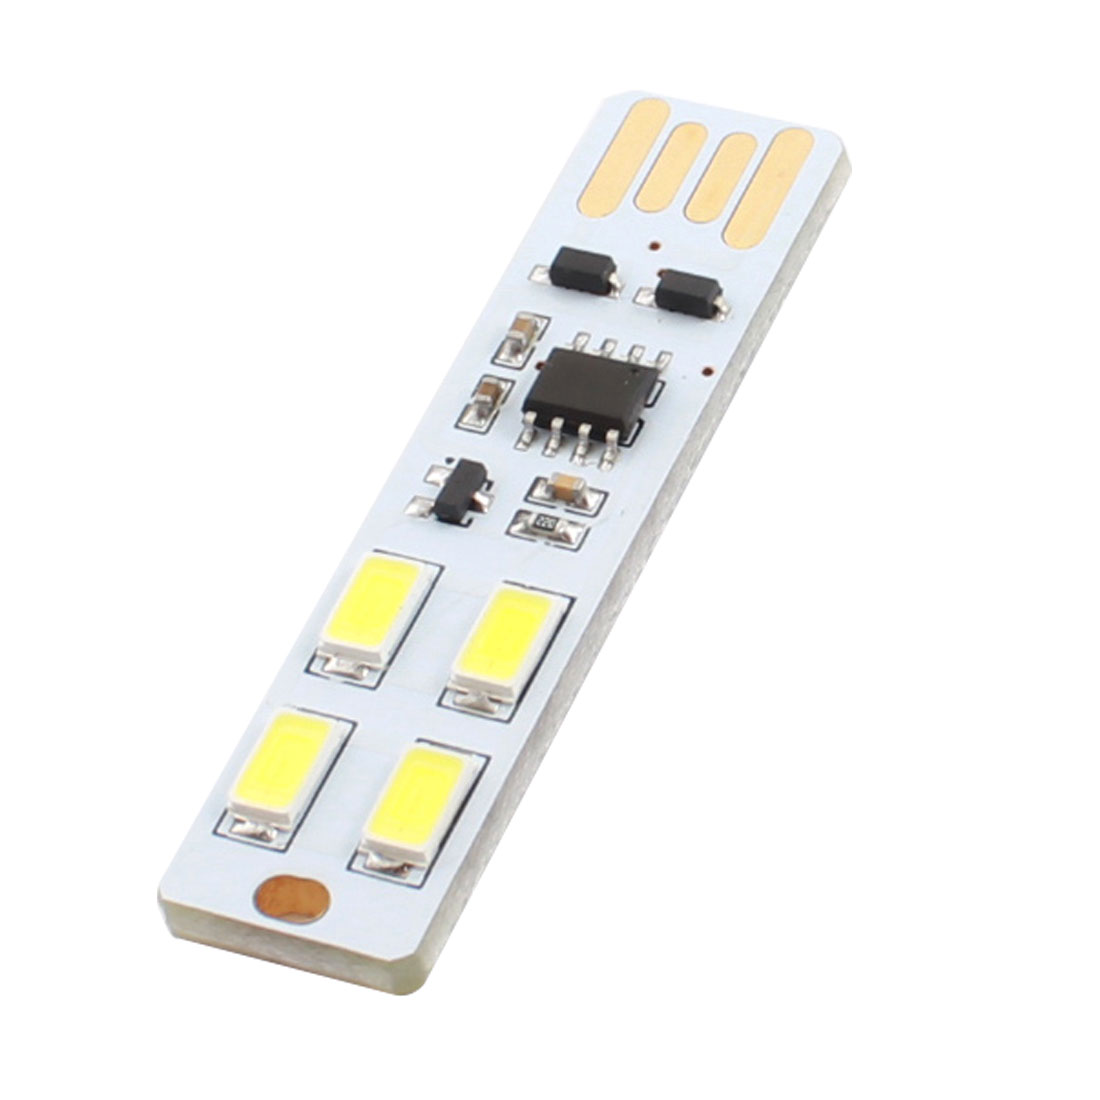 PCB Board USB 2.0 White SMD 5630 4LED Adjustable Mini Touch Dimmer Control Light Lamp for PC Notebook Laptop Computer